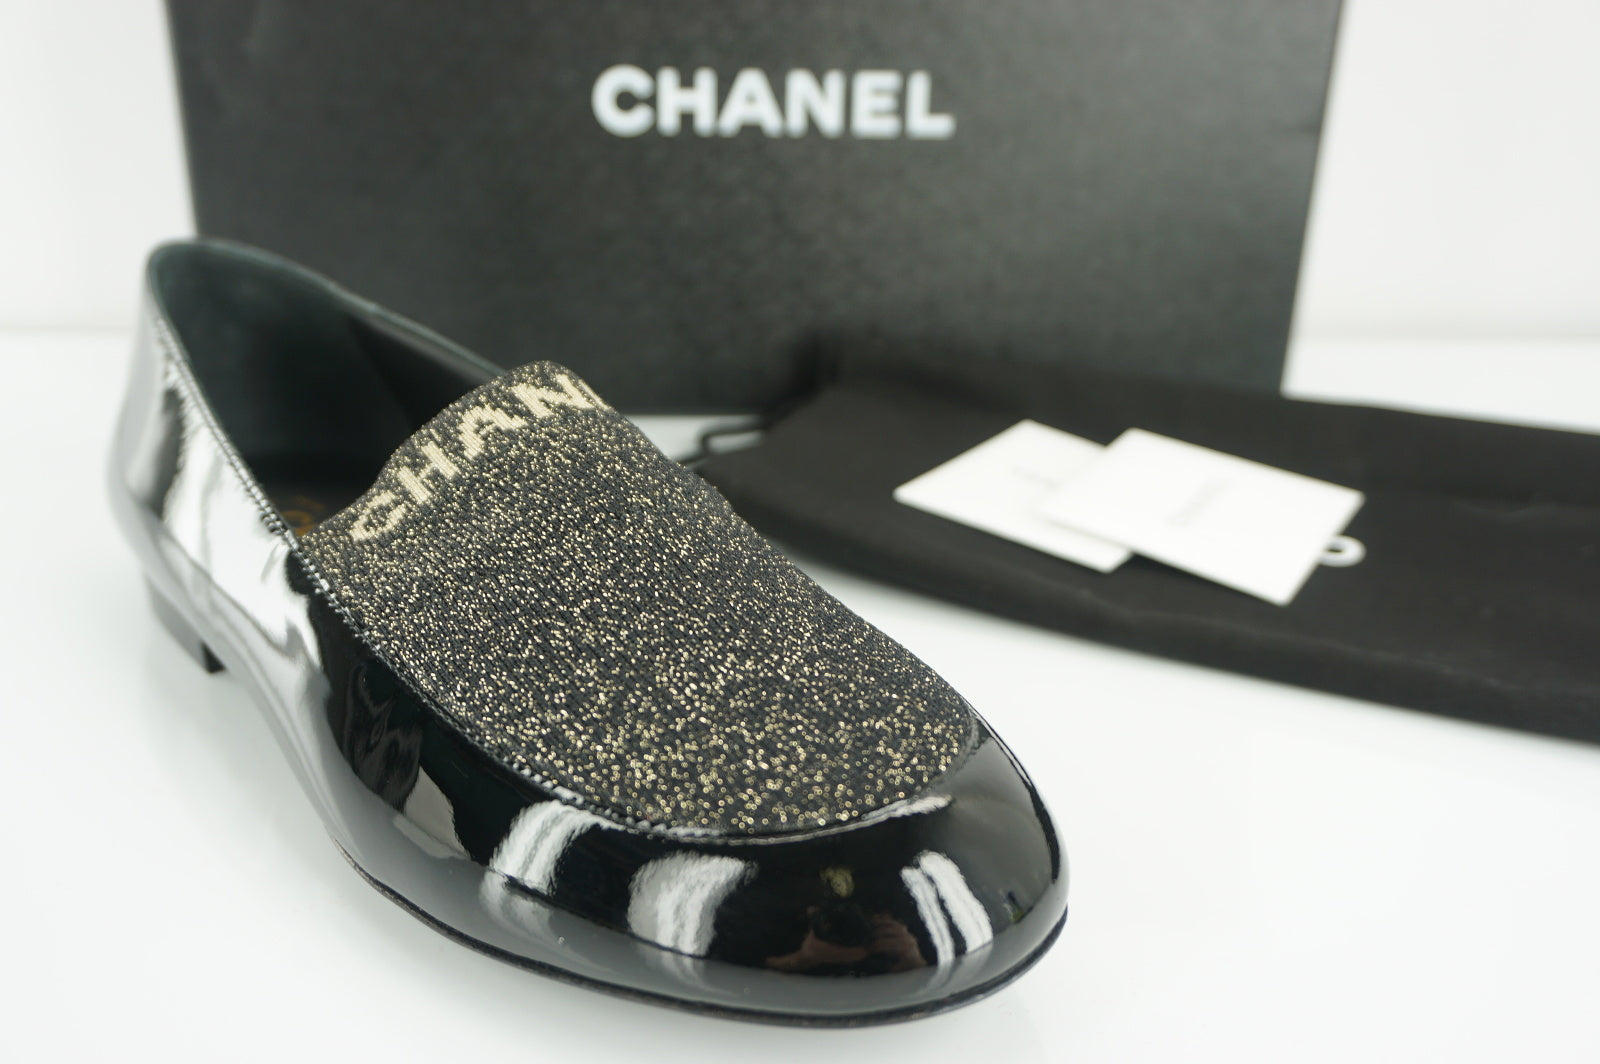 Chanel Black Patent Gold Glitter Lame logo Slipper Size 38 Flats $750 NIB 17B